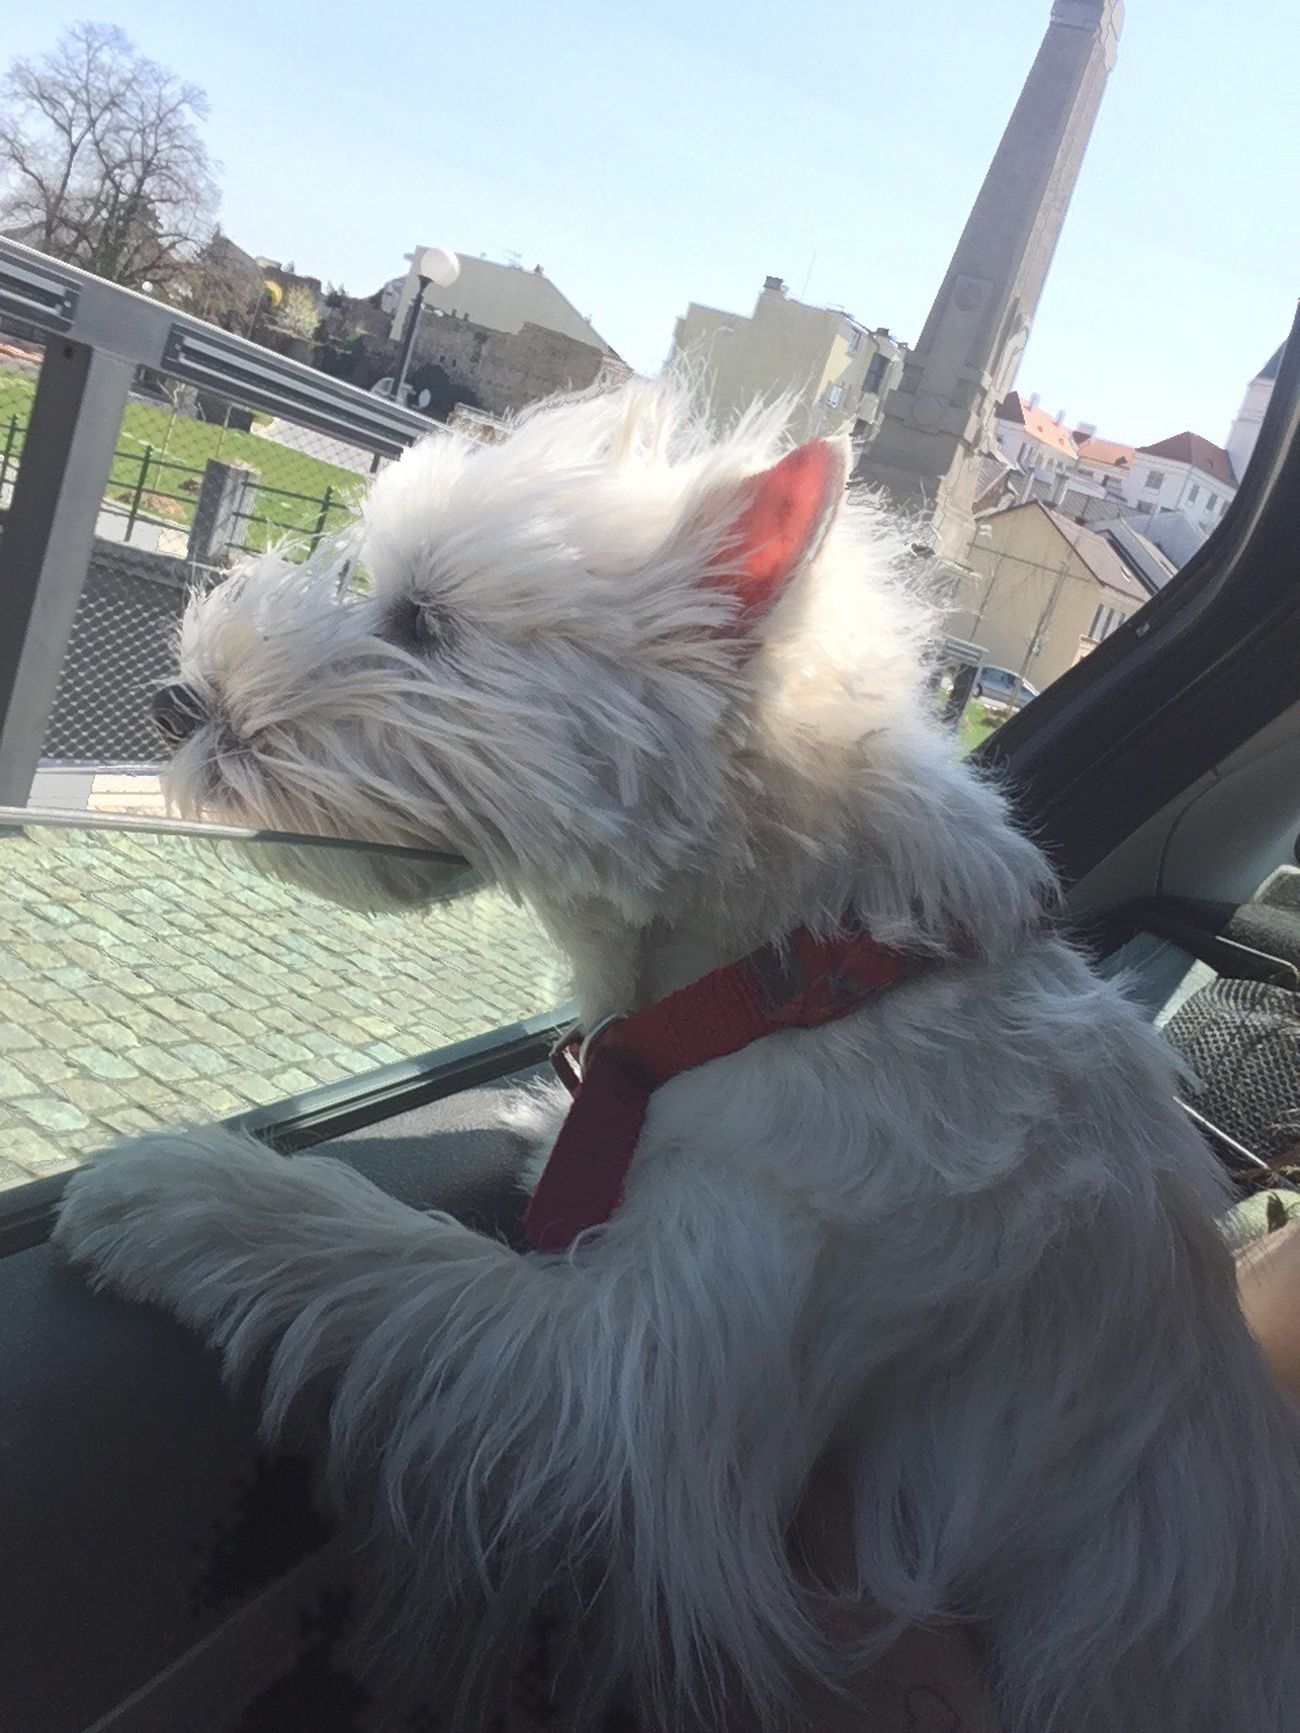 Pets Dog Springtime Spring Queen My Love Ilovemydog Pet Photography  Dogs My Dog Is Cooler Than Your Kids Westie Goodgirl Hello World In Car Dog Love I Love My Dog My Dog (null)Roxy Animal Pet Family My Girl Love Wind